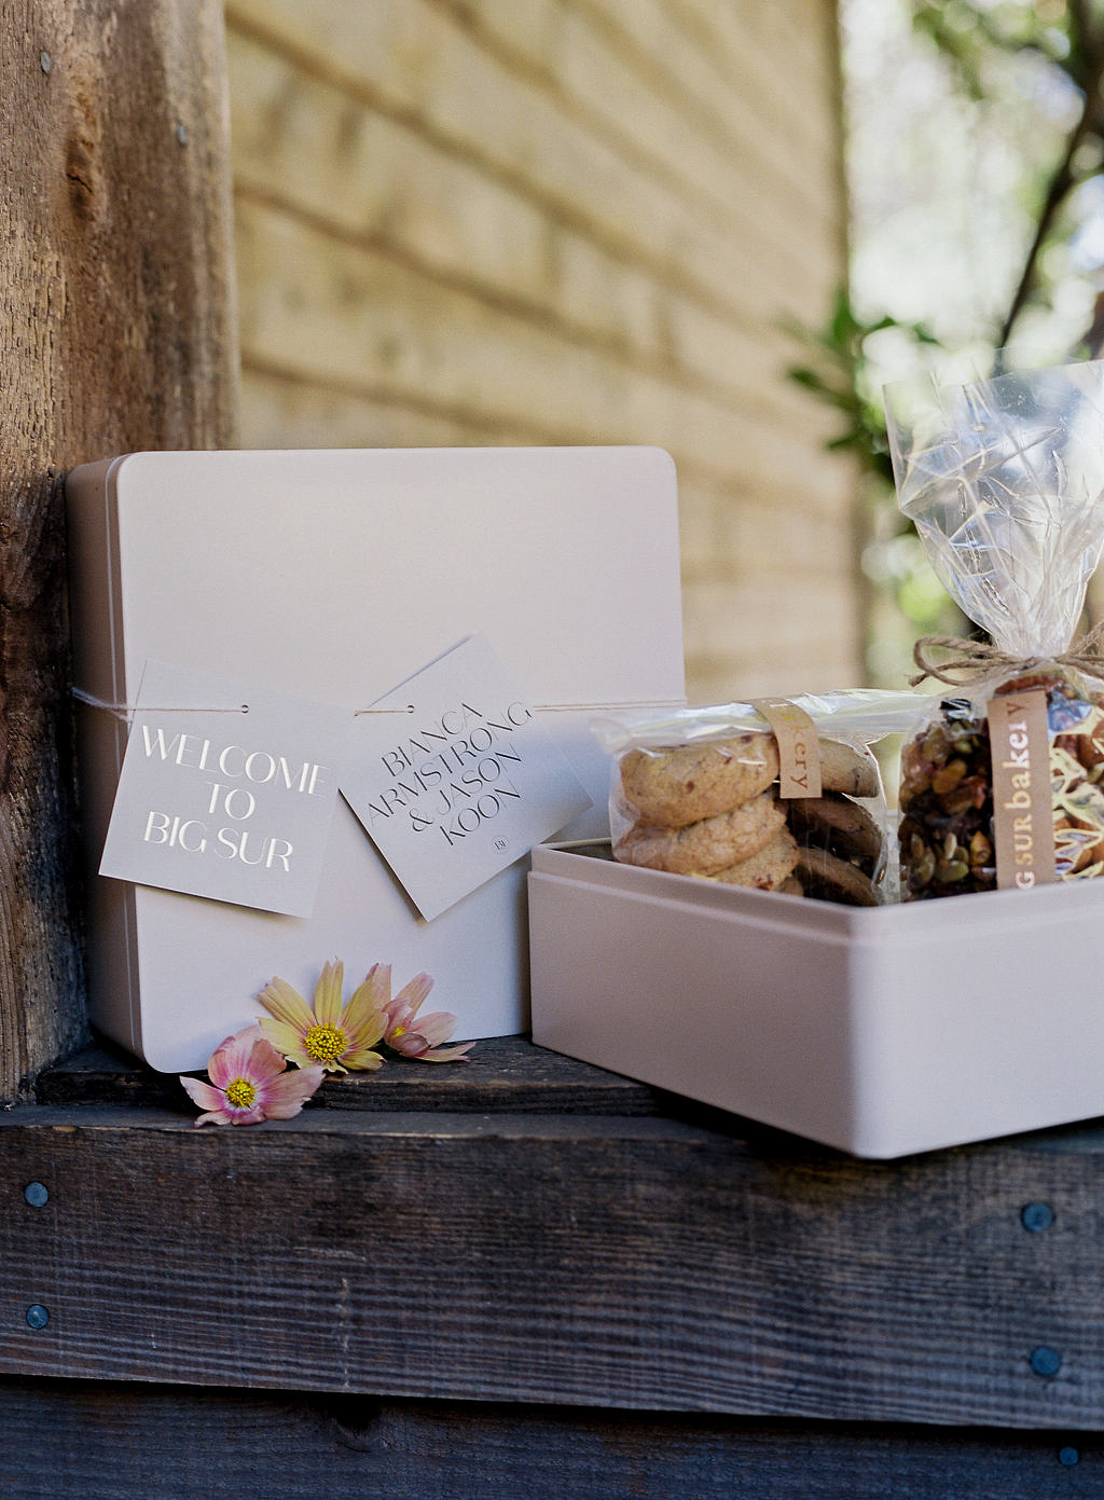 welcome boxes with cookies inside